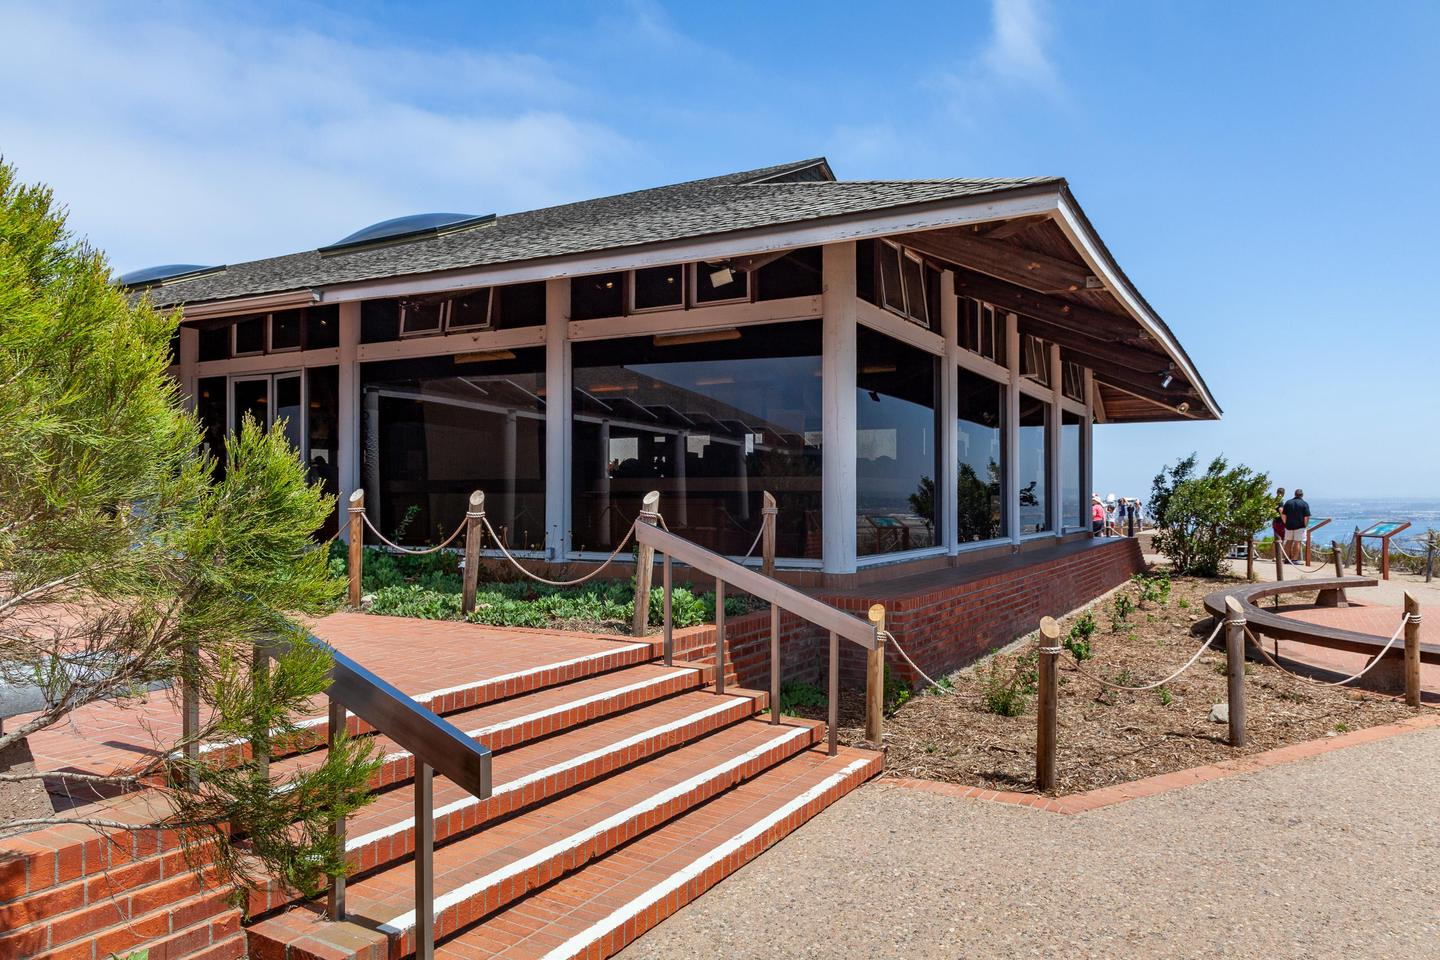 The View Building from the southThis is the walkway to the scenic overlook of San Diego Bay. The View Building is shown with its large floor to ceiling windows providing a spectacular view of San Diego Bay and the city.